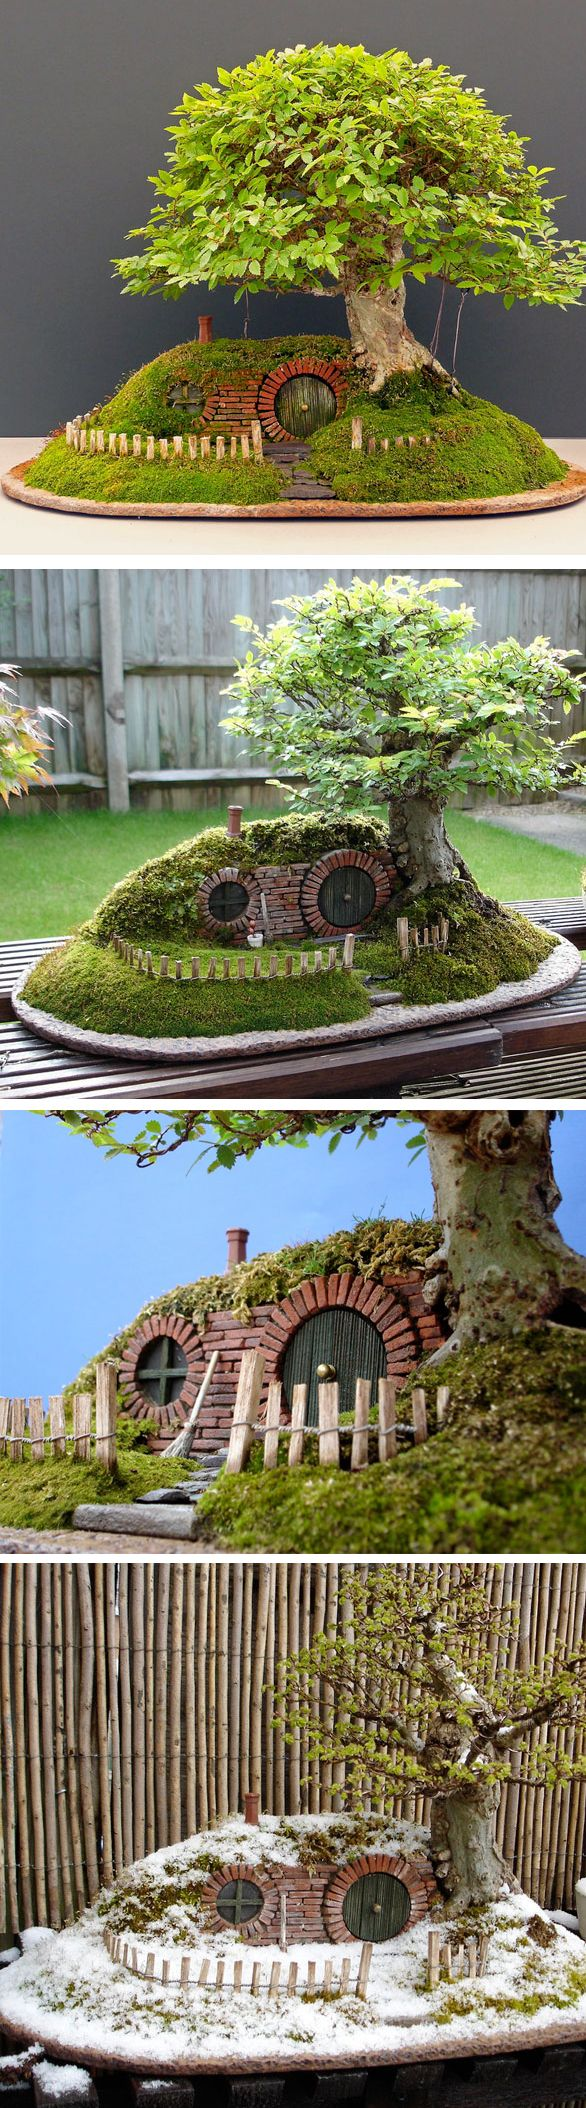 Bag End Bonsai Trayscape #bonsaiplants